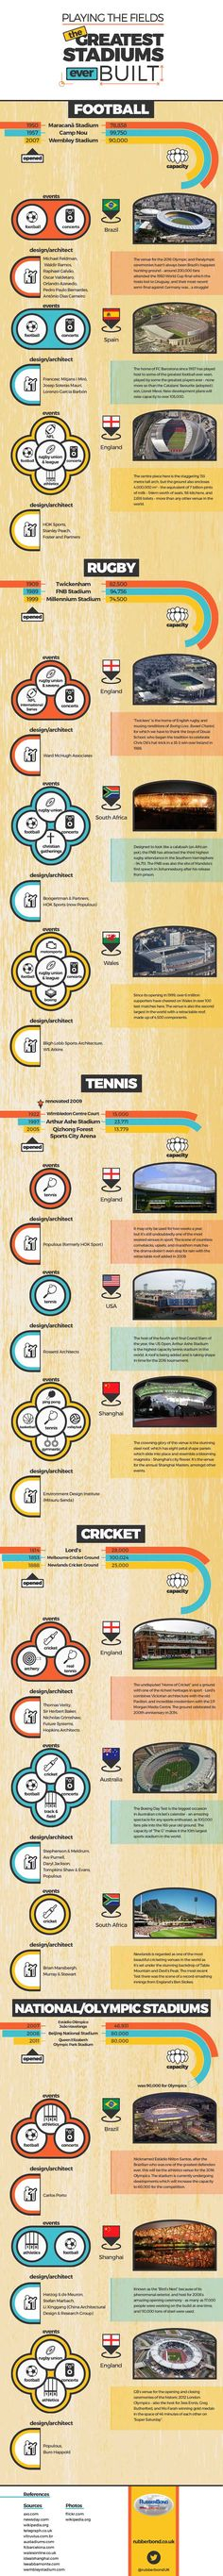 infographic, reader submitted content, sports stadiums, stadium, stadium design, olympic stadium, national stadium, RubberBond